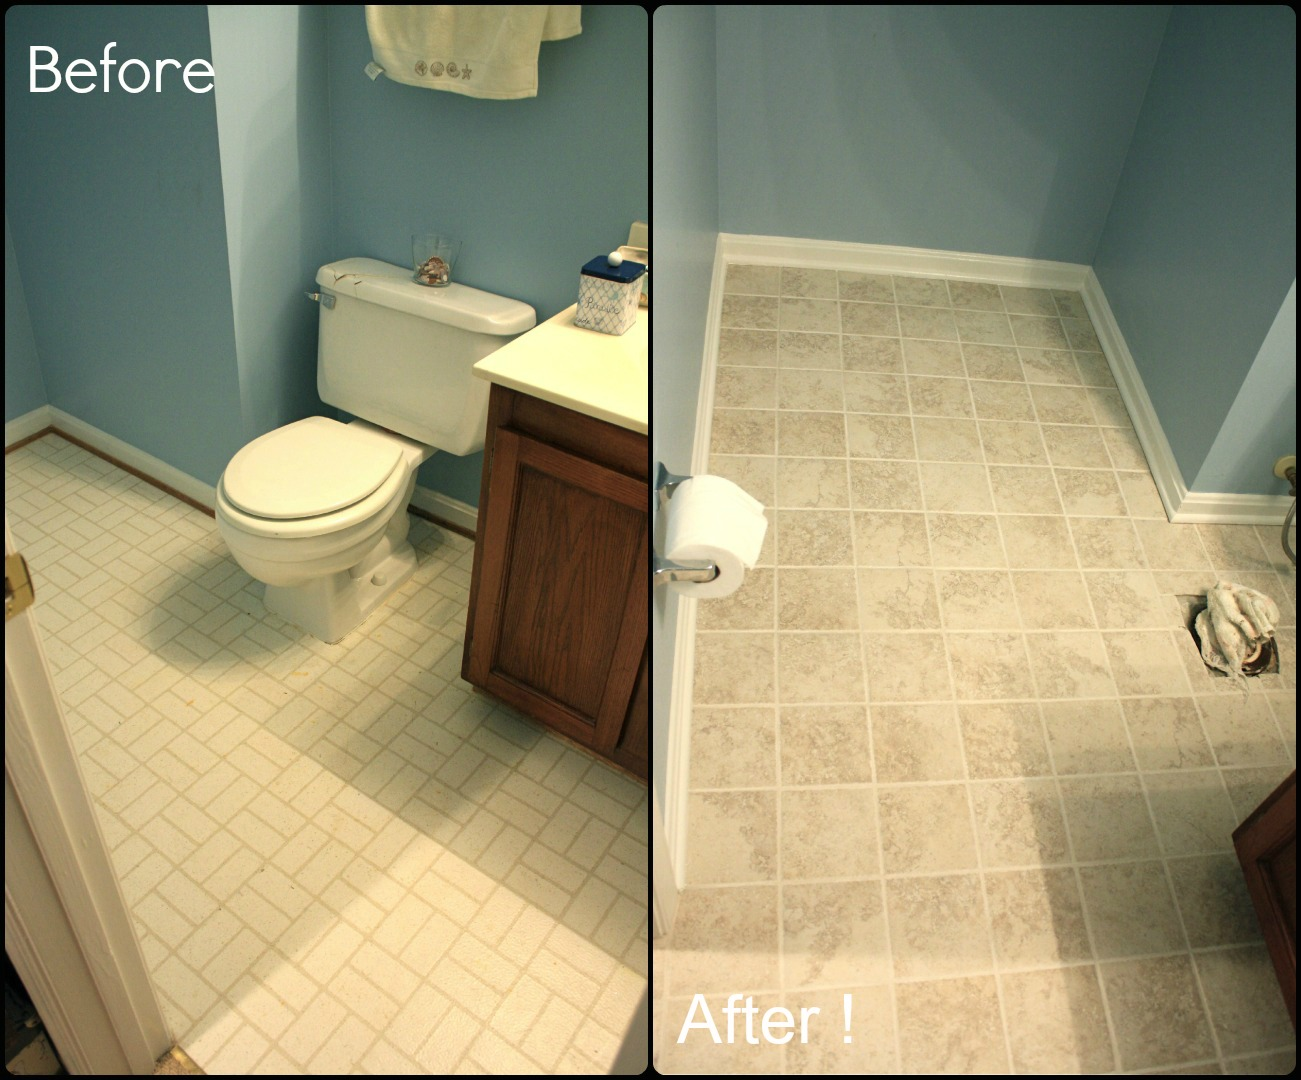 Painting Bathroom Tile Floor Before and After